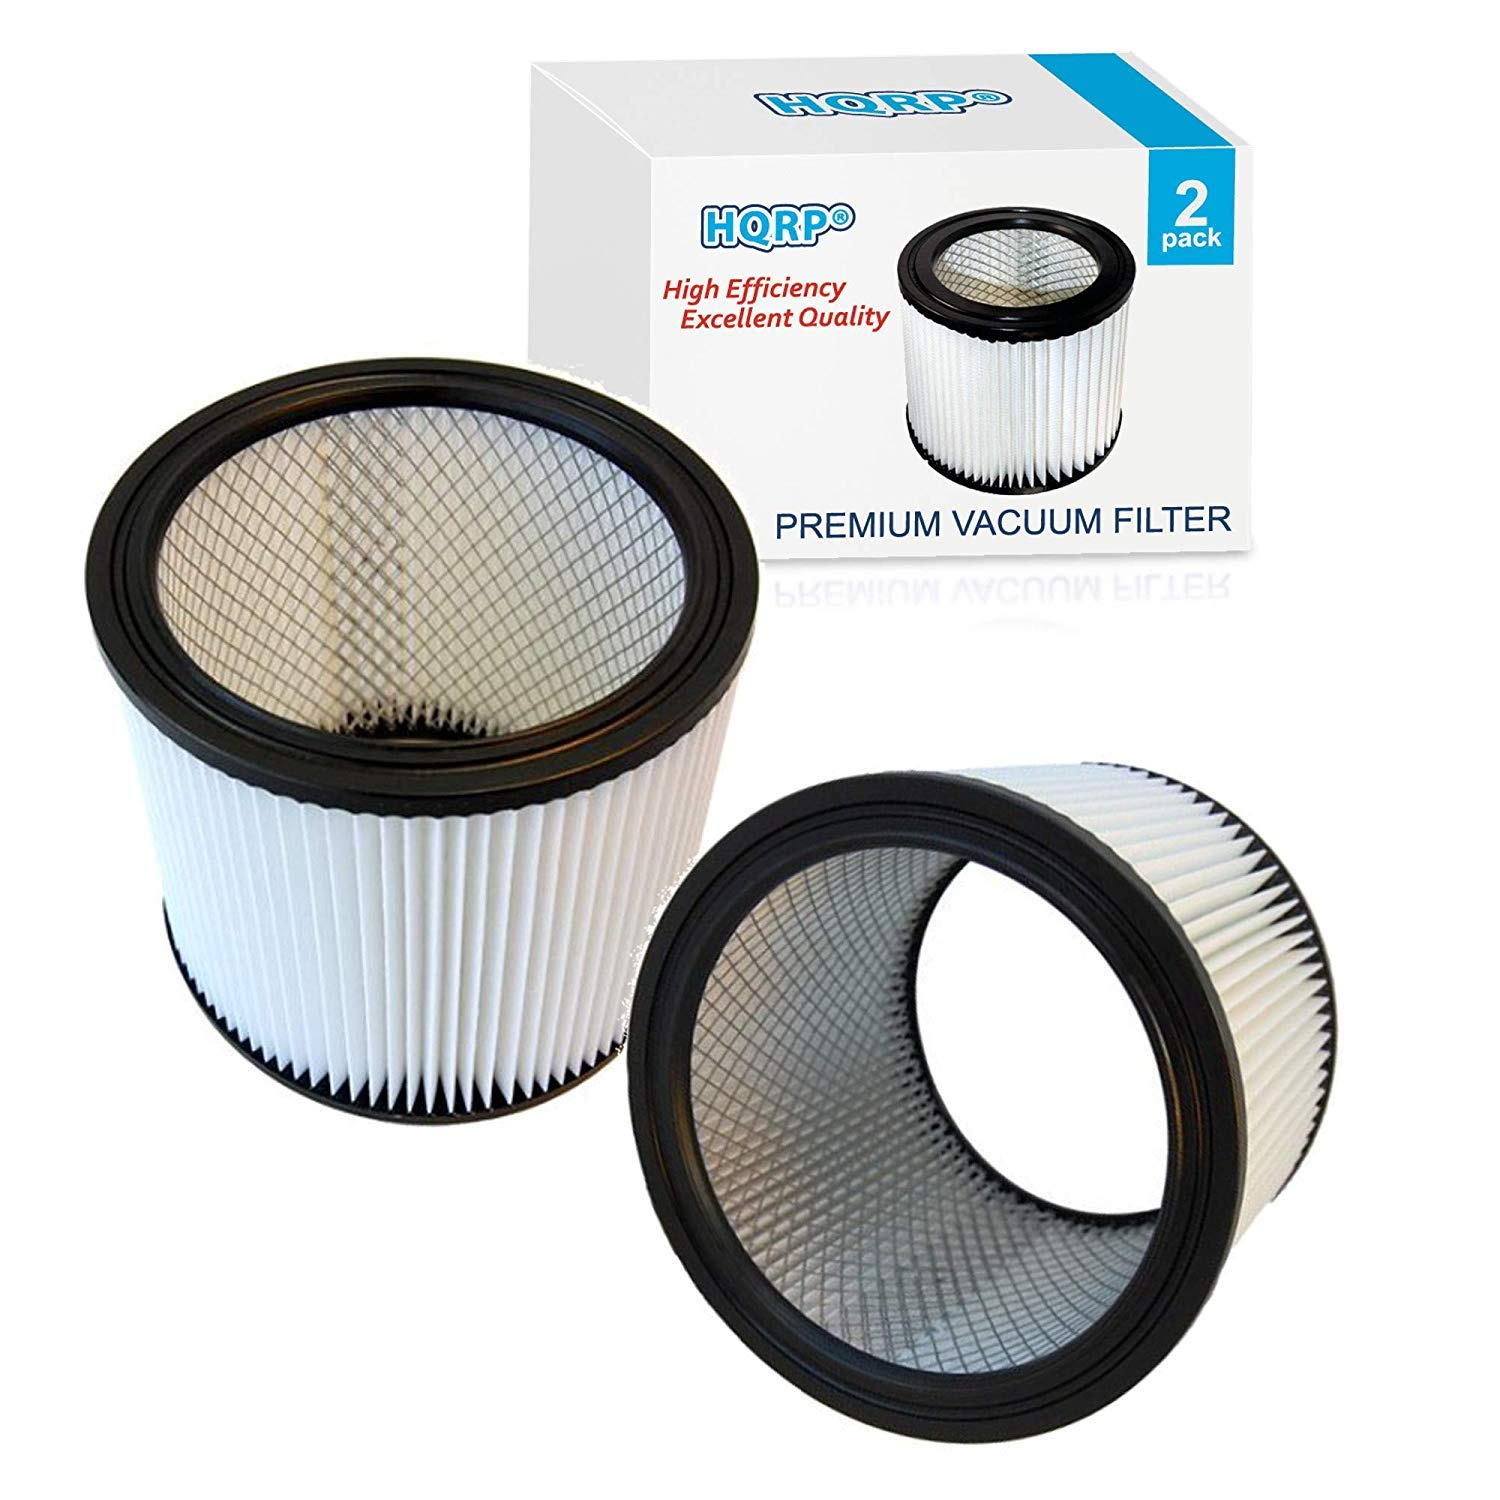 HQRP Cartridge Filter 2-Pack compatible with Shop-Vac 90350 90304 90333 Replacement fits most Wet/Dry Vacuum Cleaners 5 Gallon and above by HQRP